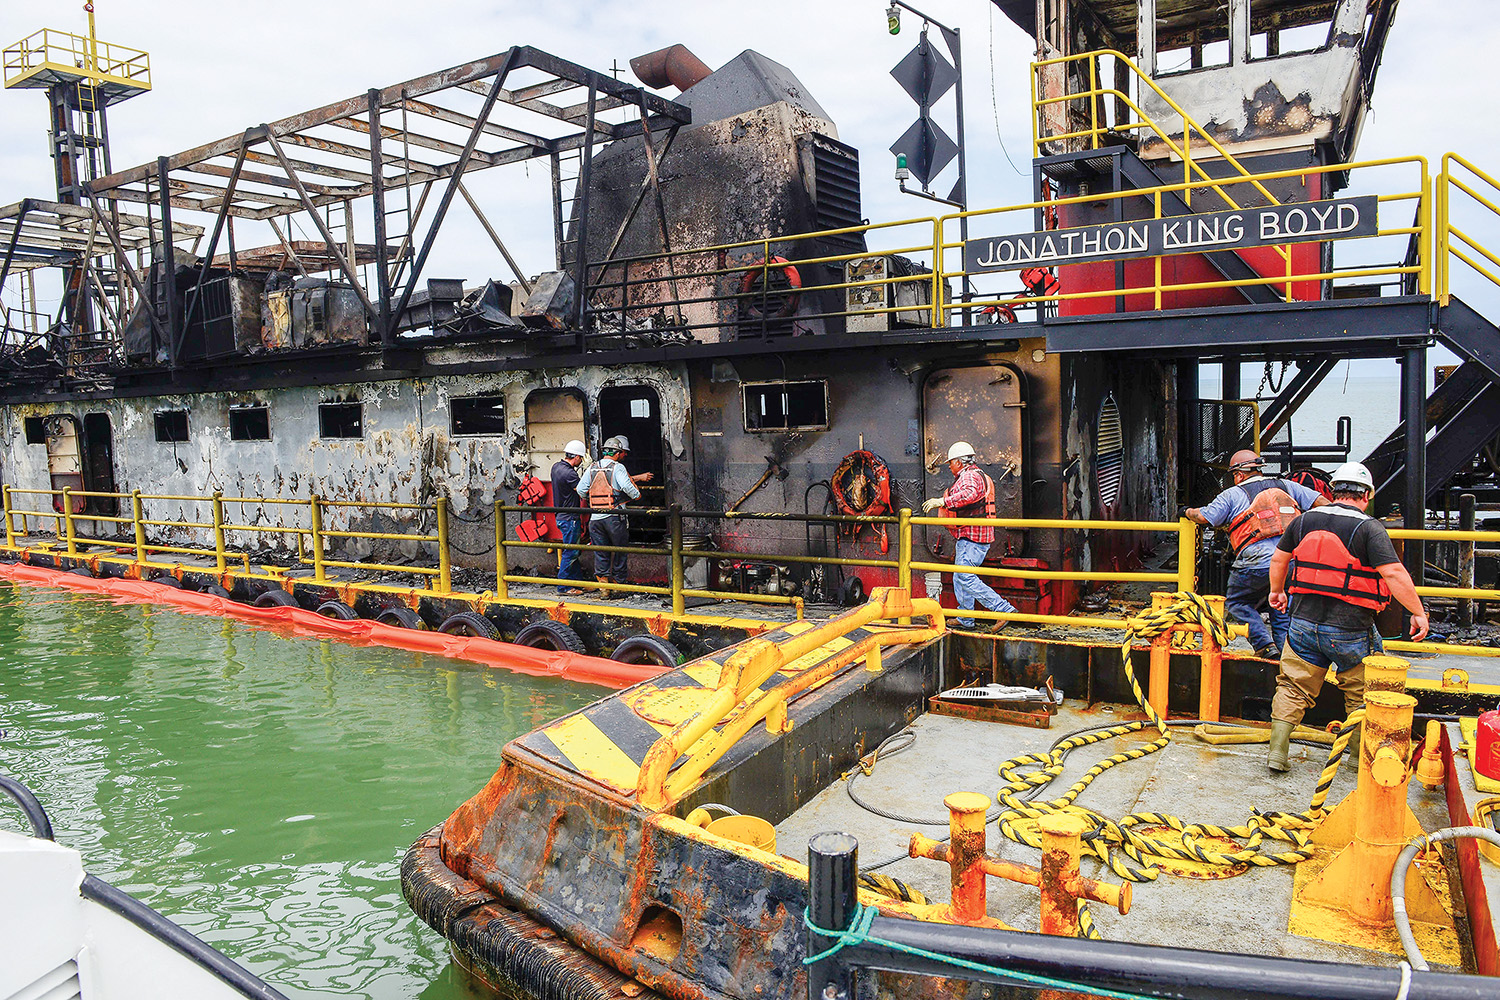 Crews assess damage to burned out dredge Jonathon King Boyd. (U.S. Coast Guard photo by Petty Officer 1st Class Kelly Parker)